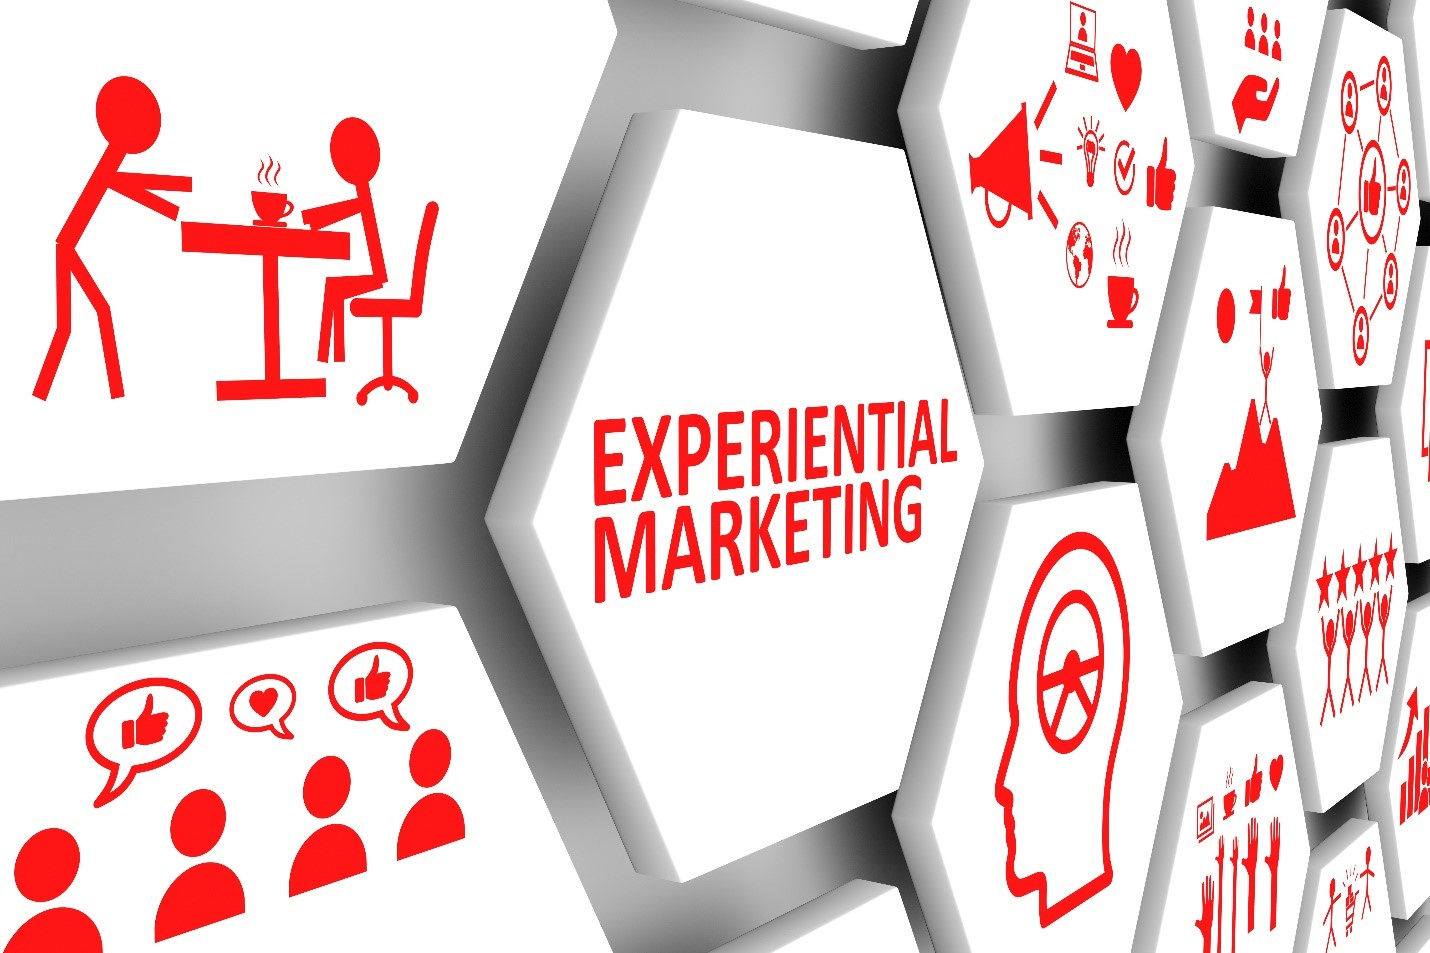 What is Experiential Marketing, and Why Does it Matter?